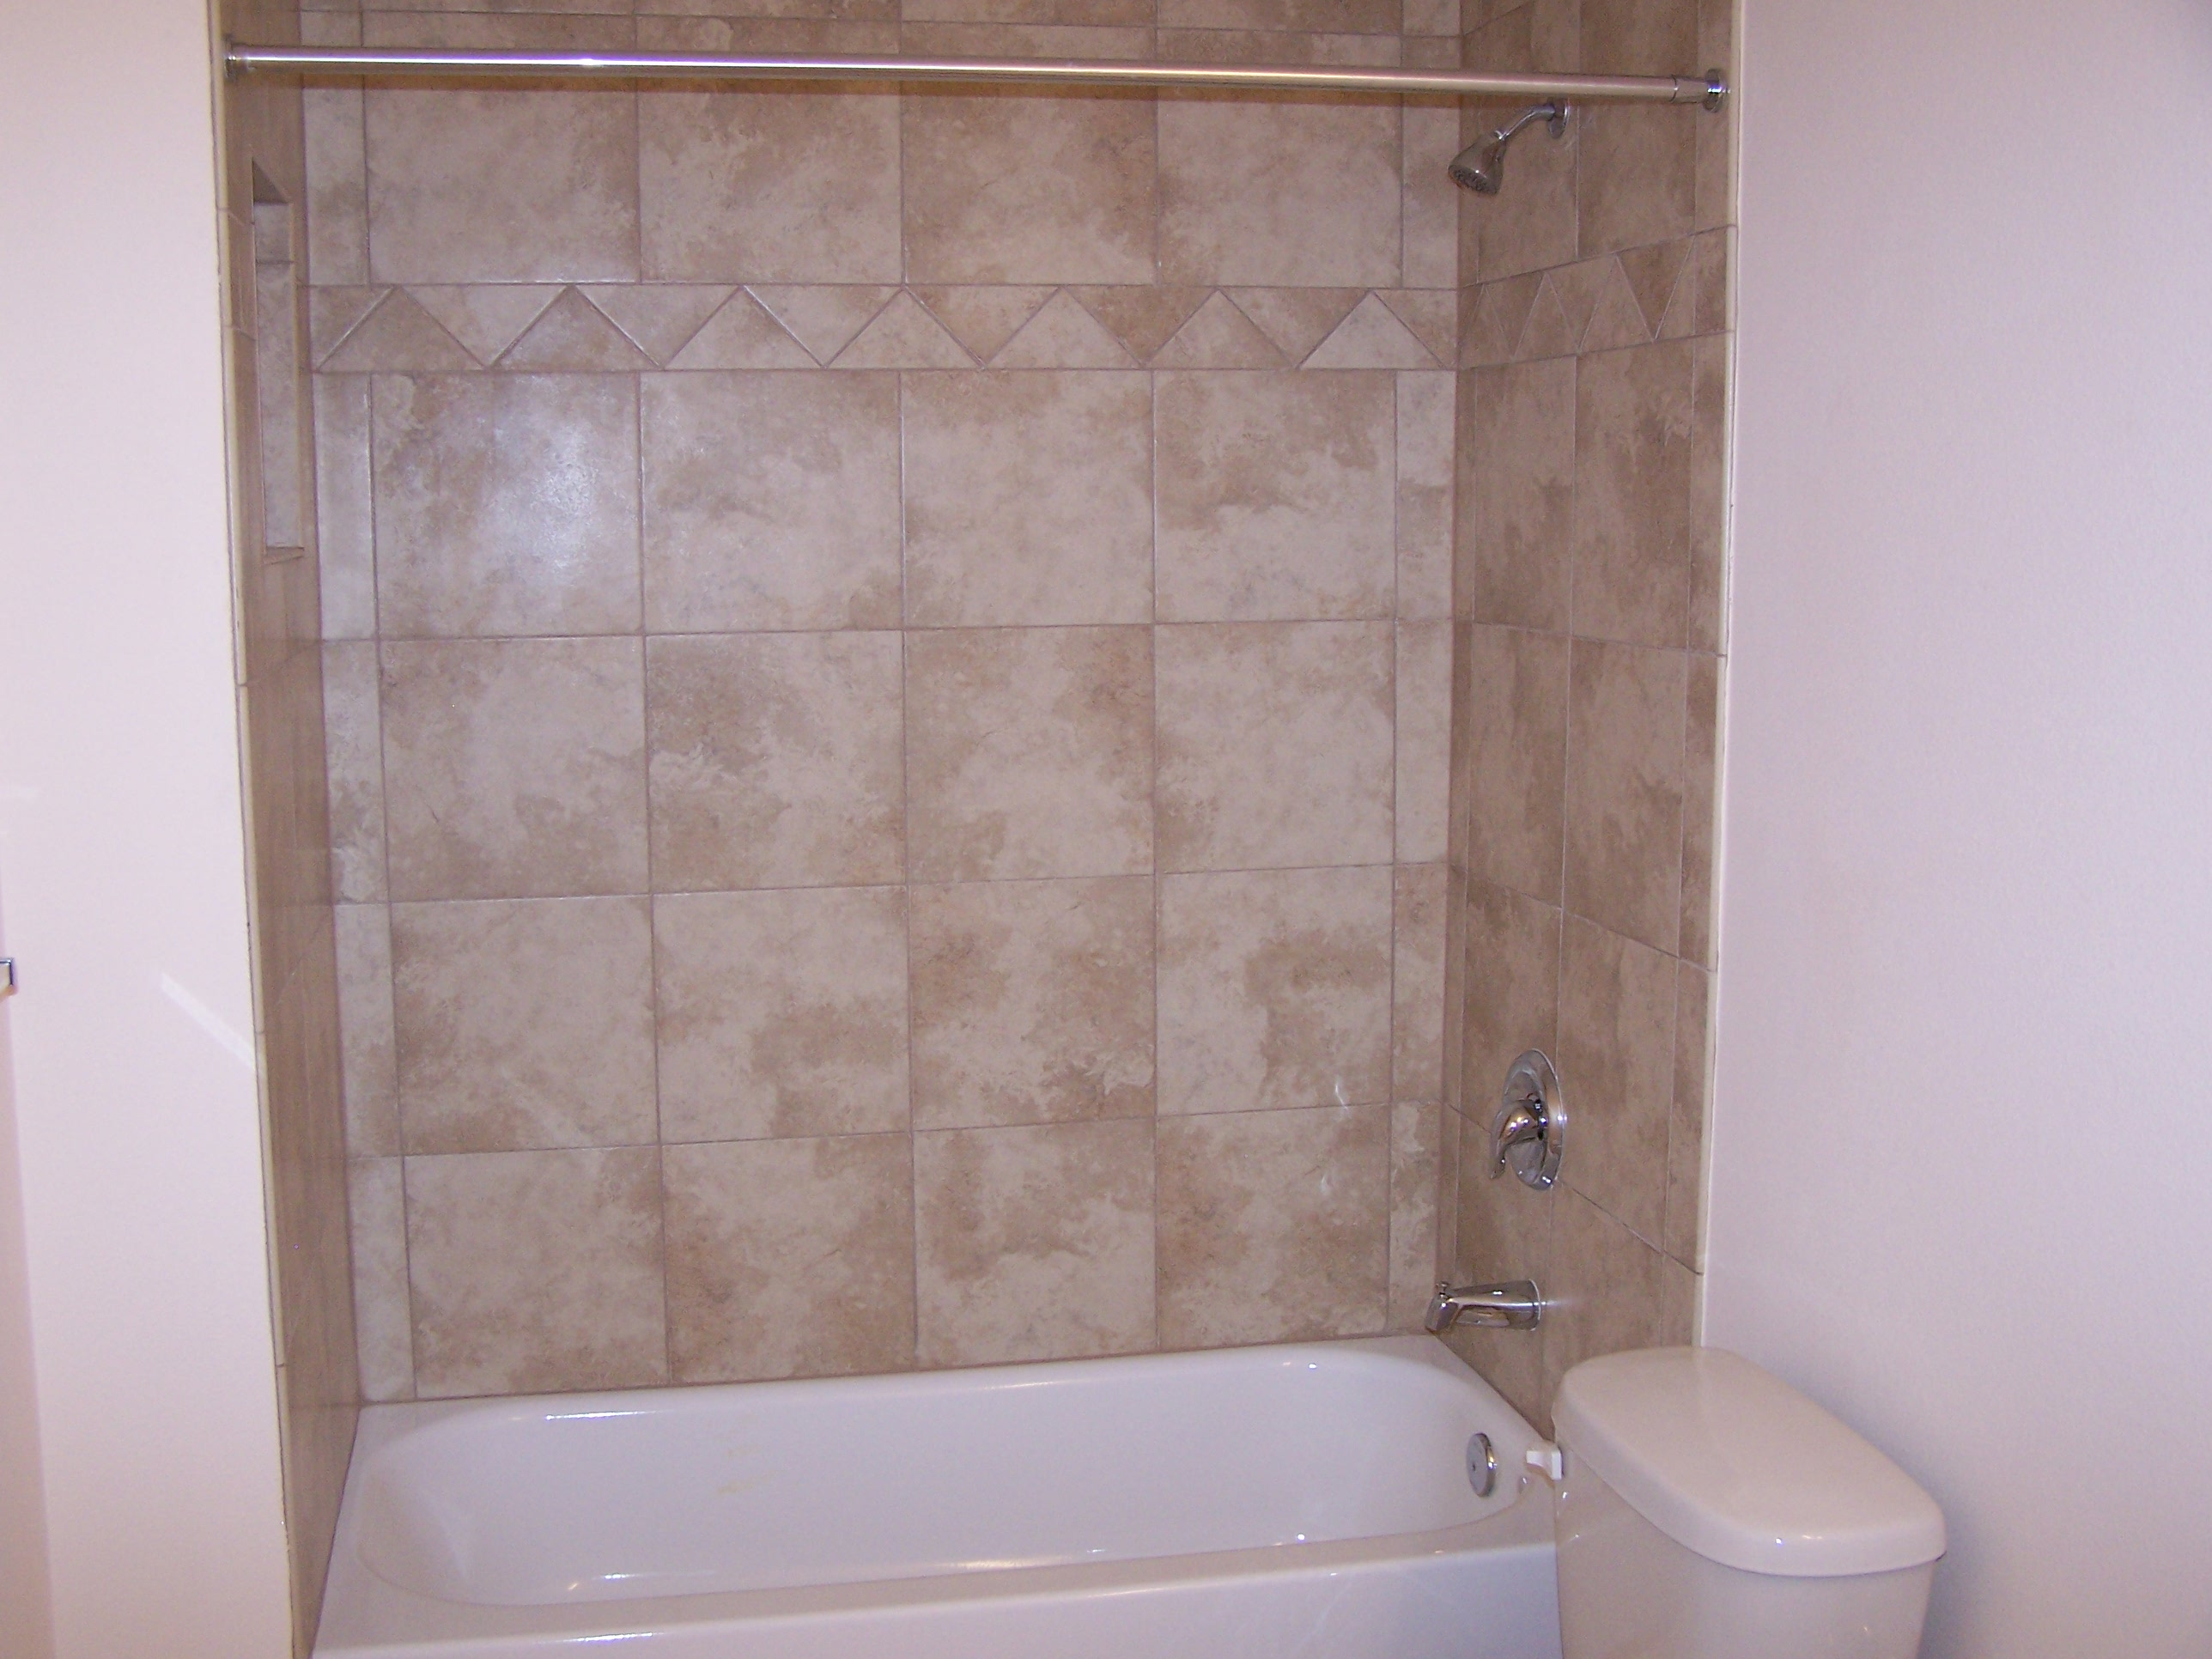 bathtub-toilet-shower-head-curtain-rod-white-wall-paint-pinwheel-trends-color-murals-warm-trim-tiled-vanities-warmer-types-commercial-bathroom-tile-gallery-projects